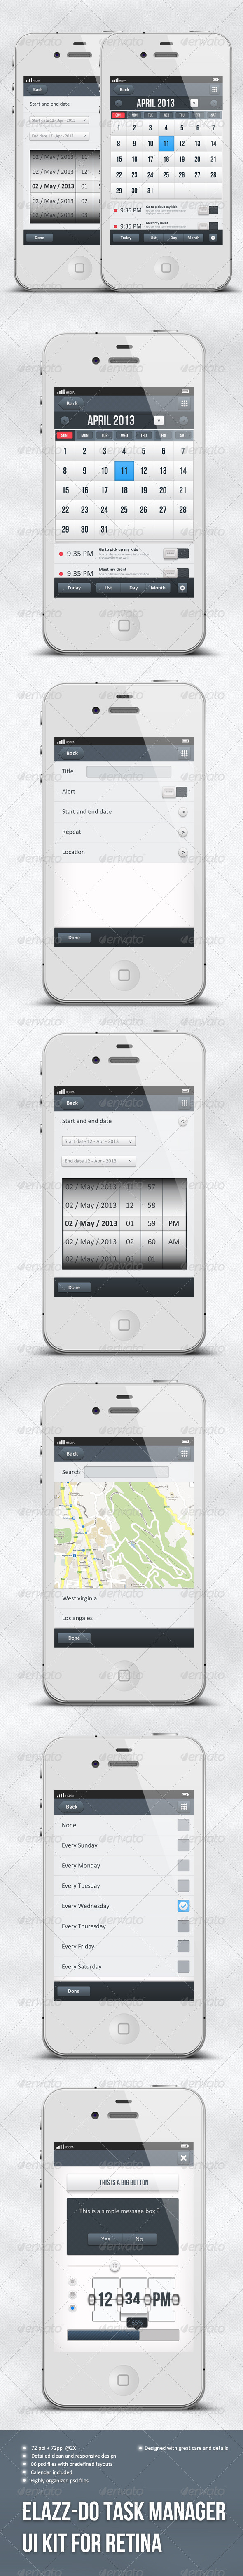 IOS Task Manager App Ui - Elazz-Do - User Interfaces Web Elements